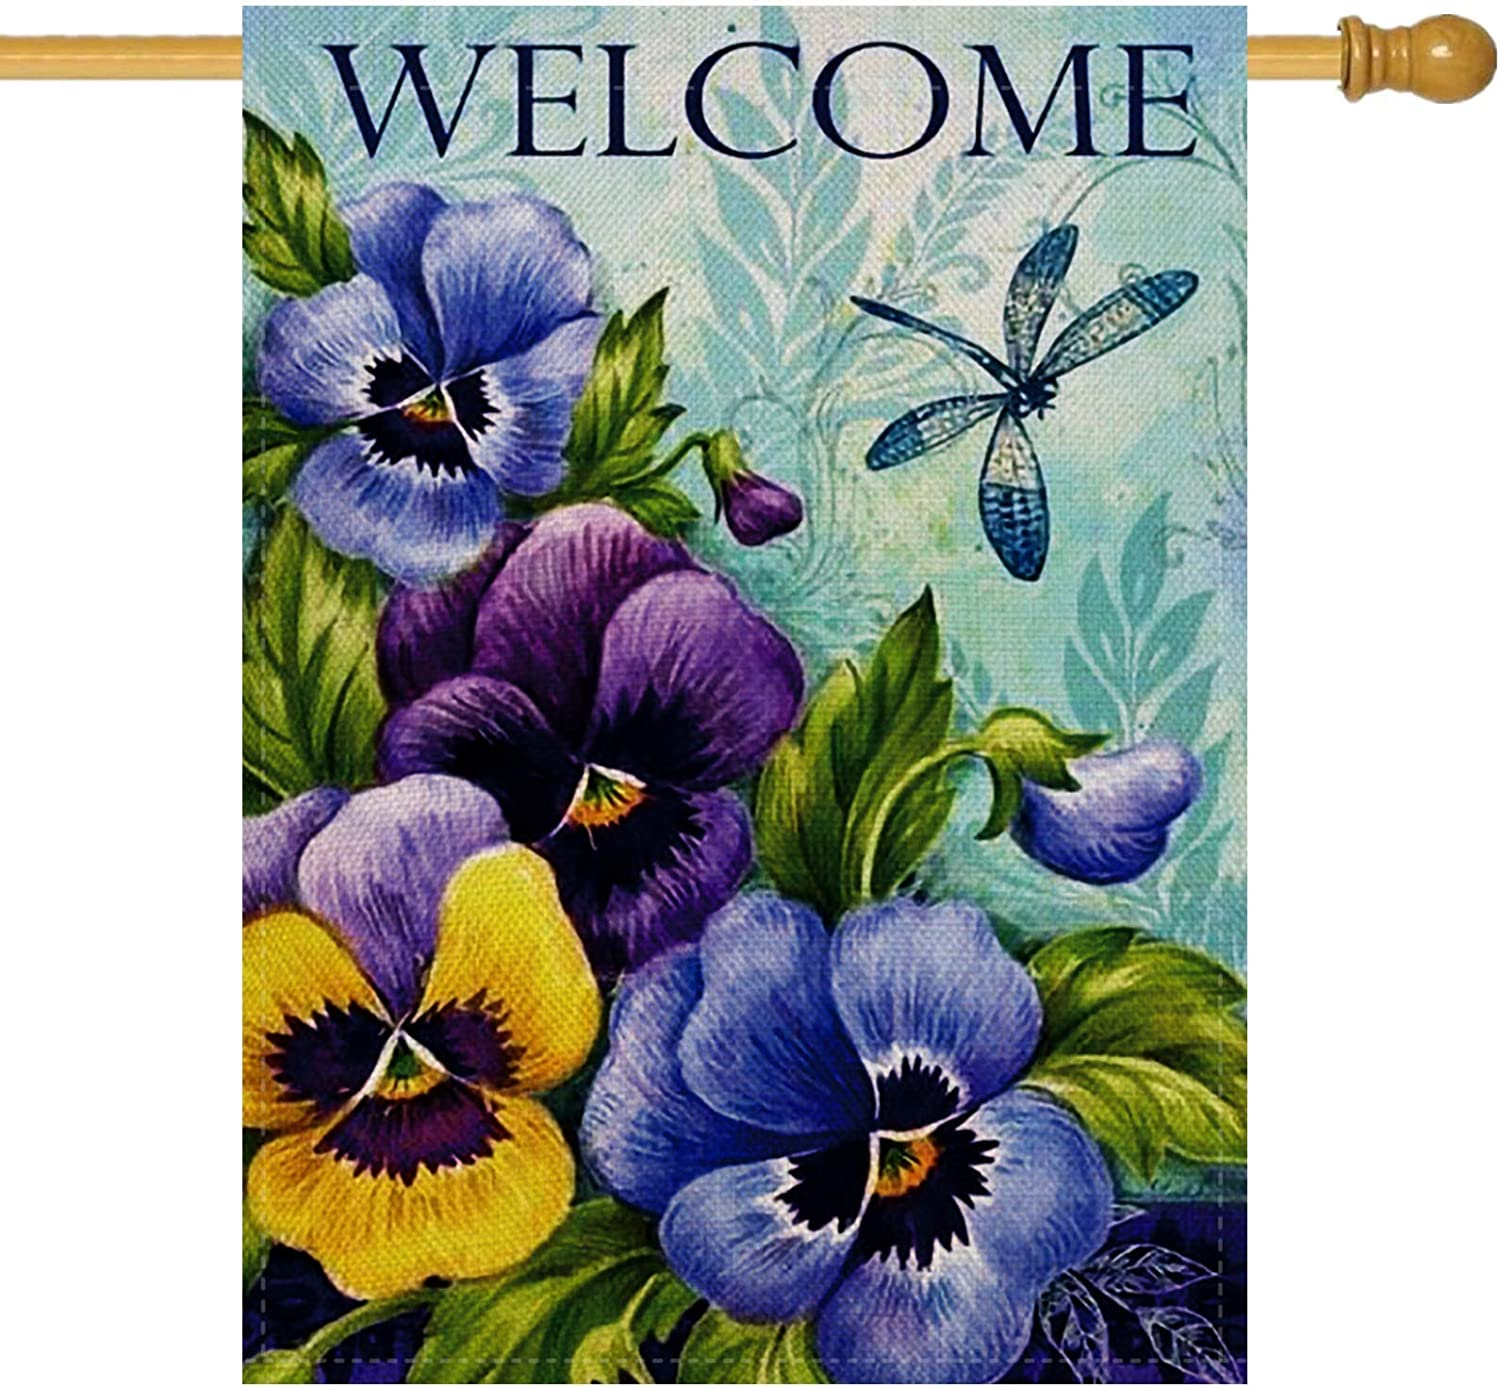 Furiaz Decorative Vintage Flower Large House Flag Double Sided, Home Floral Burlap Welcome Quote Pansies Dragonfly Outside Garden Yard Decoration, Seasonal Outdoor Décor Flag Spring Summer 28 x 40